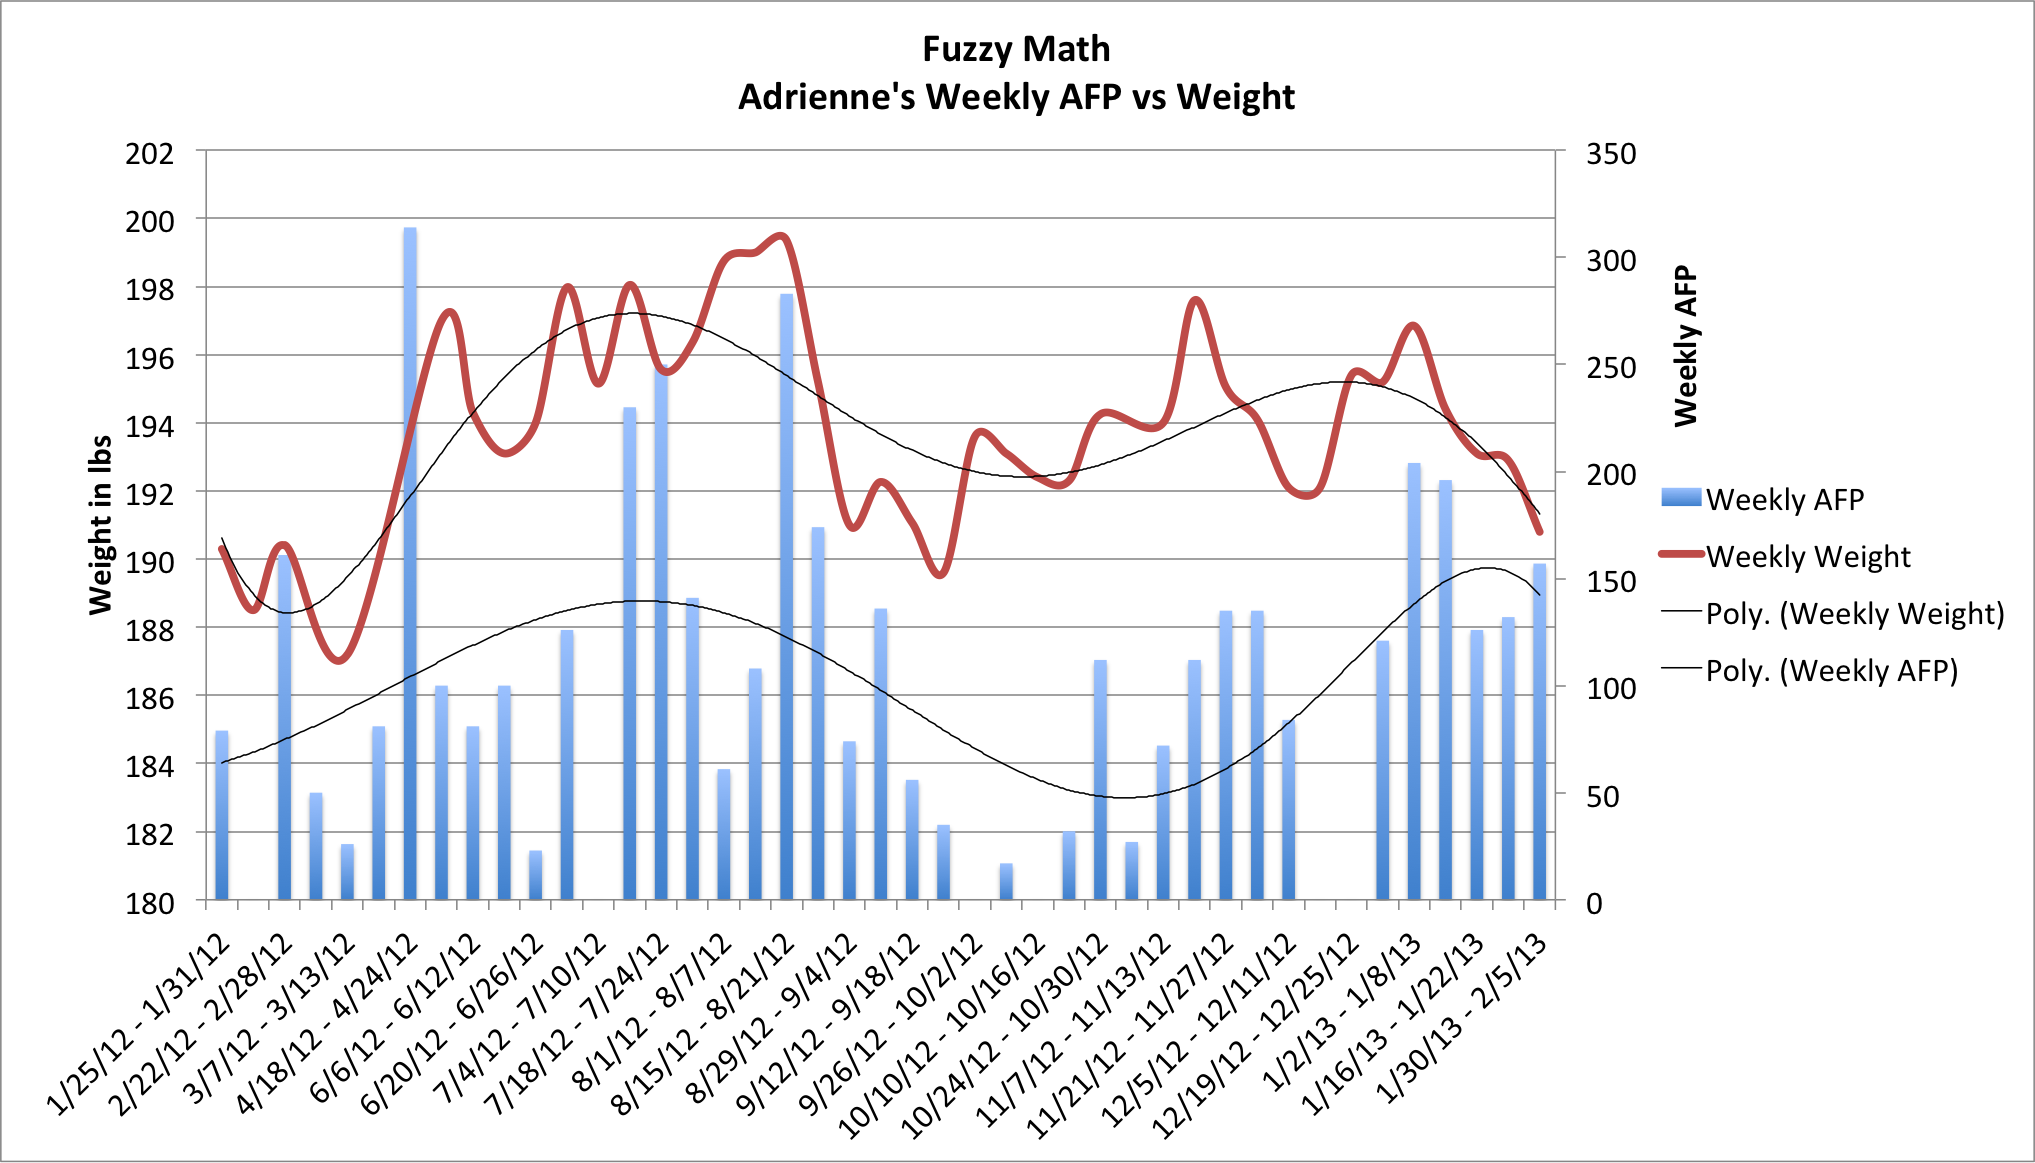 x-axis: Week, y-primary: Weight in lbs, y-seconday: weekly afp total.